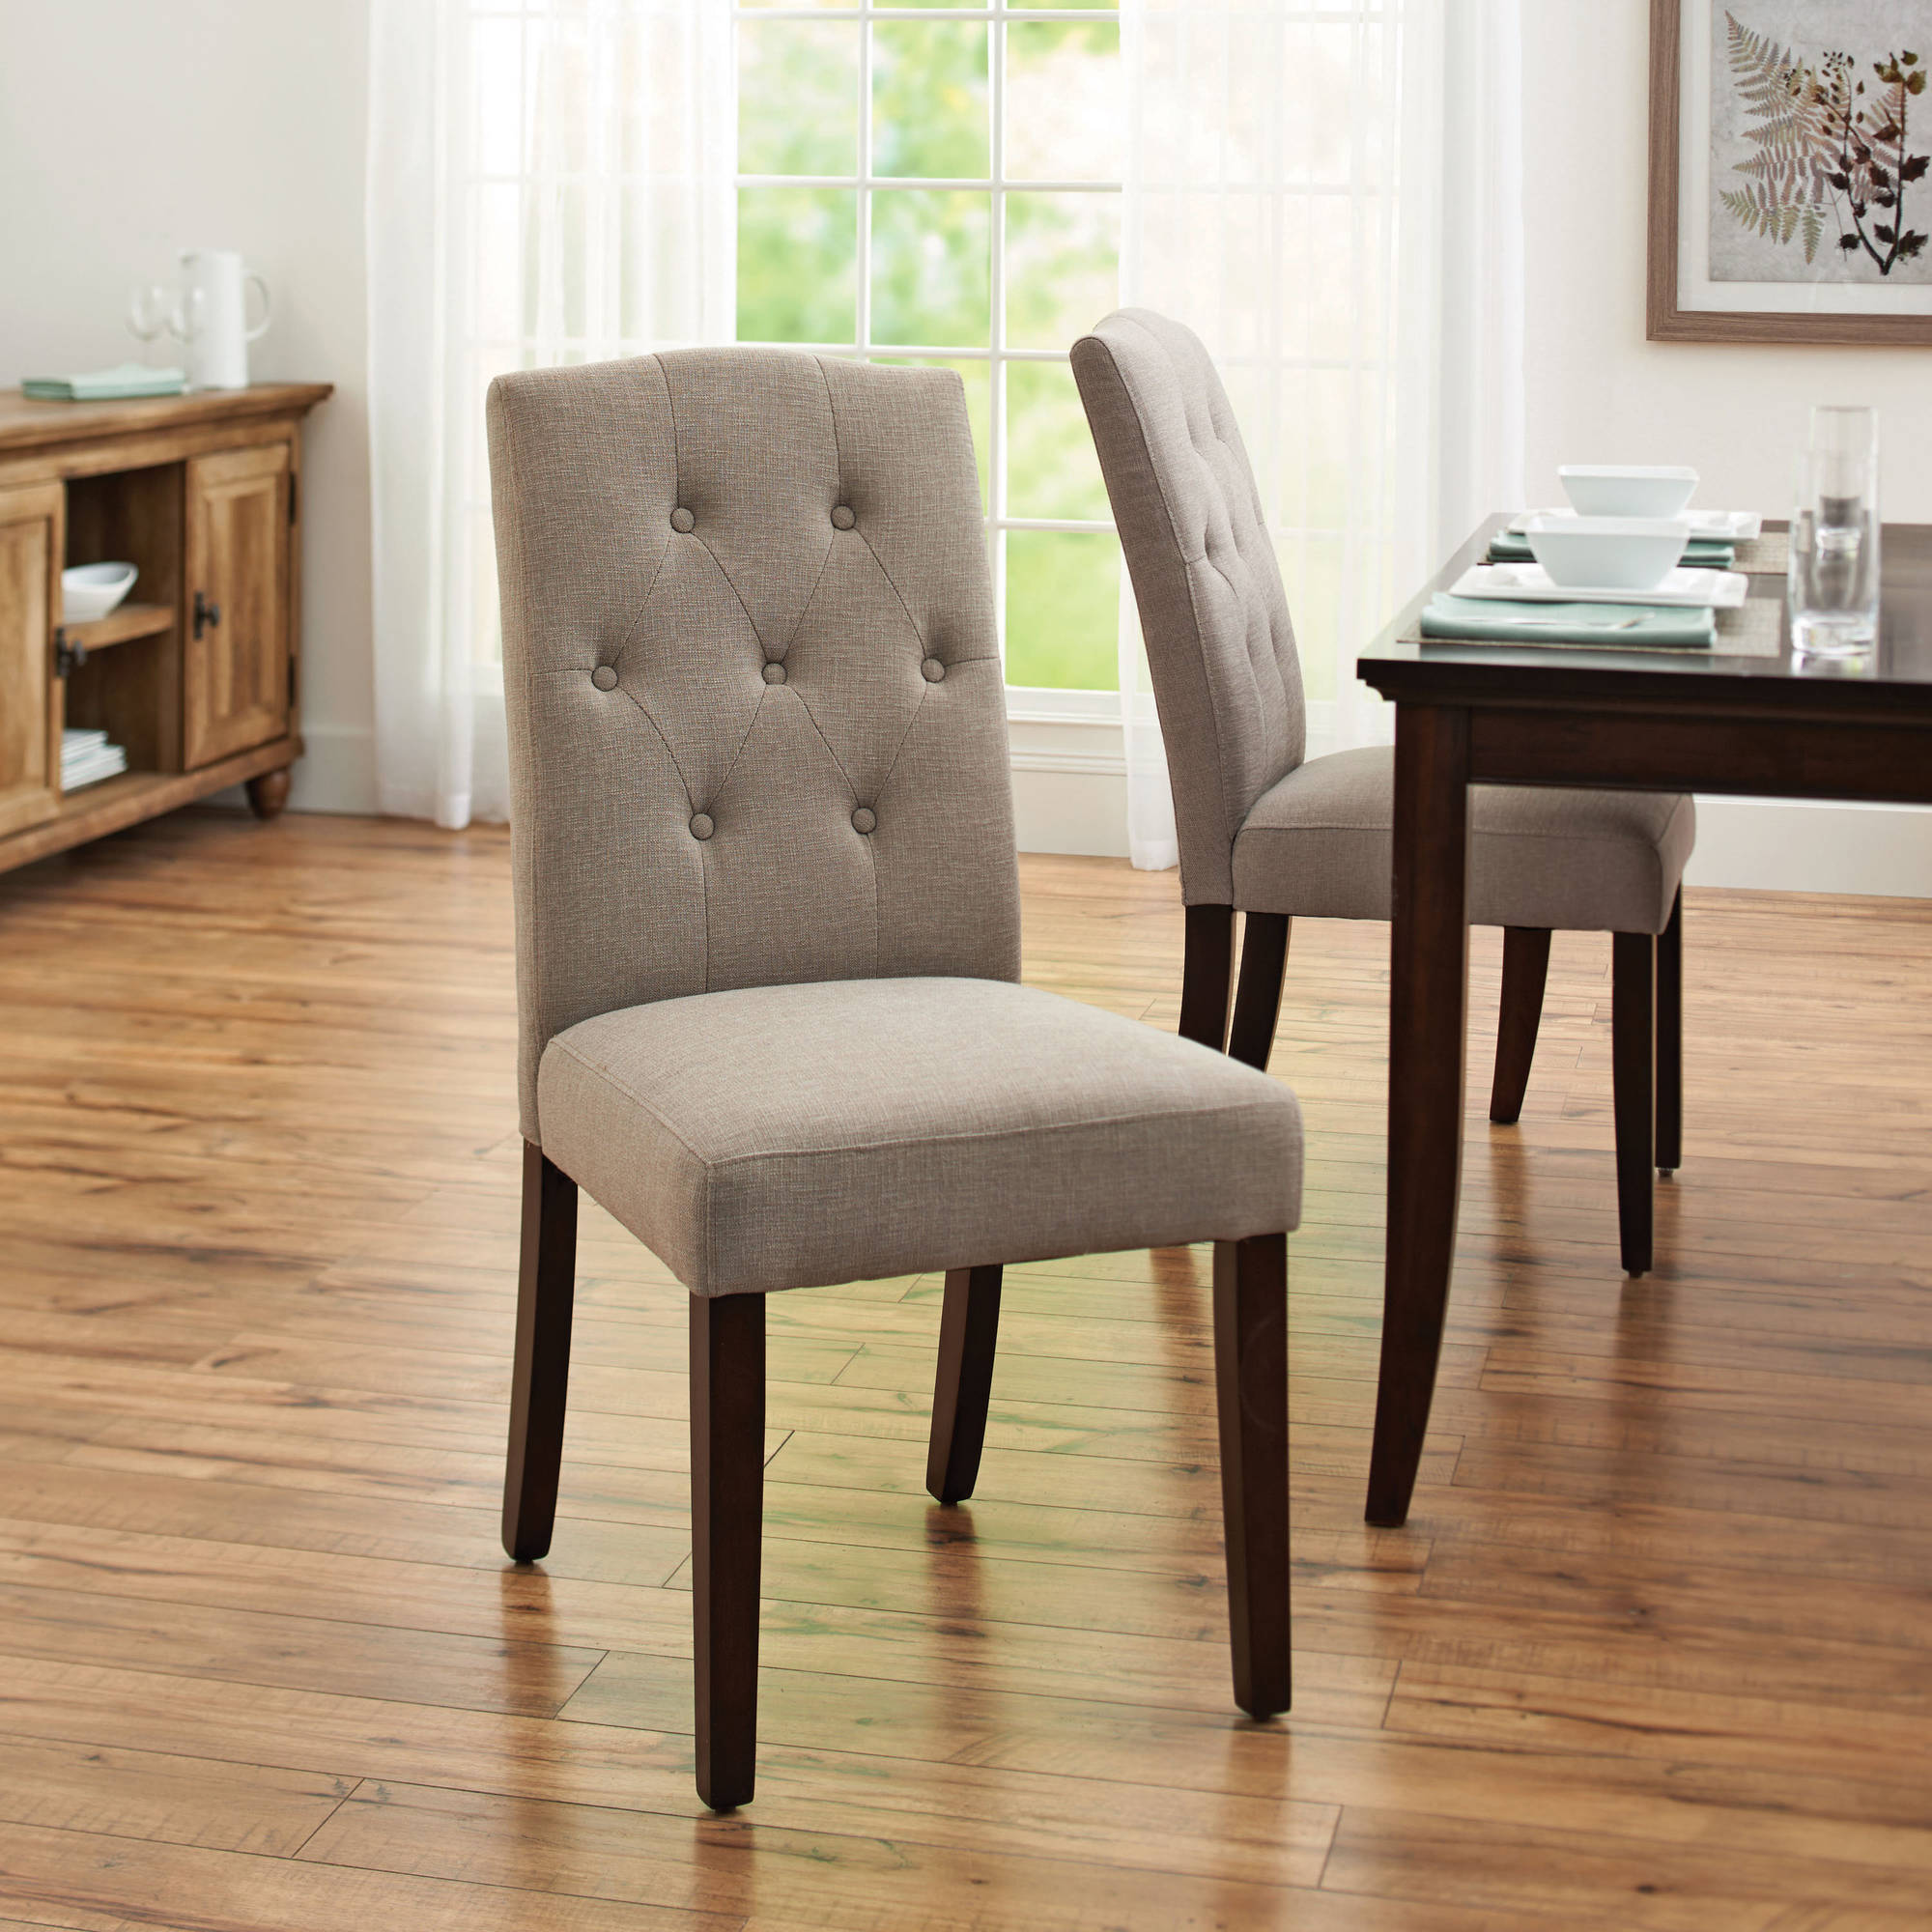 tufted dining room chairs sleeper chair better homes and gardens parsons taupe ebay details about